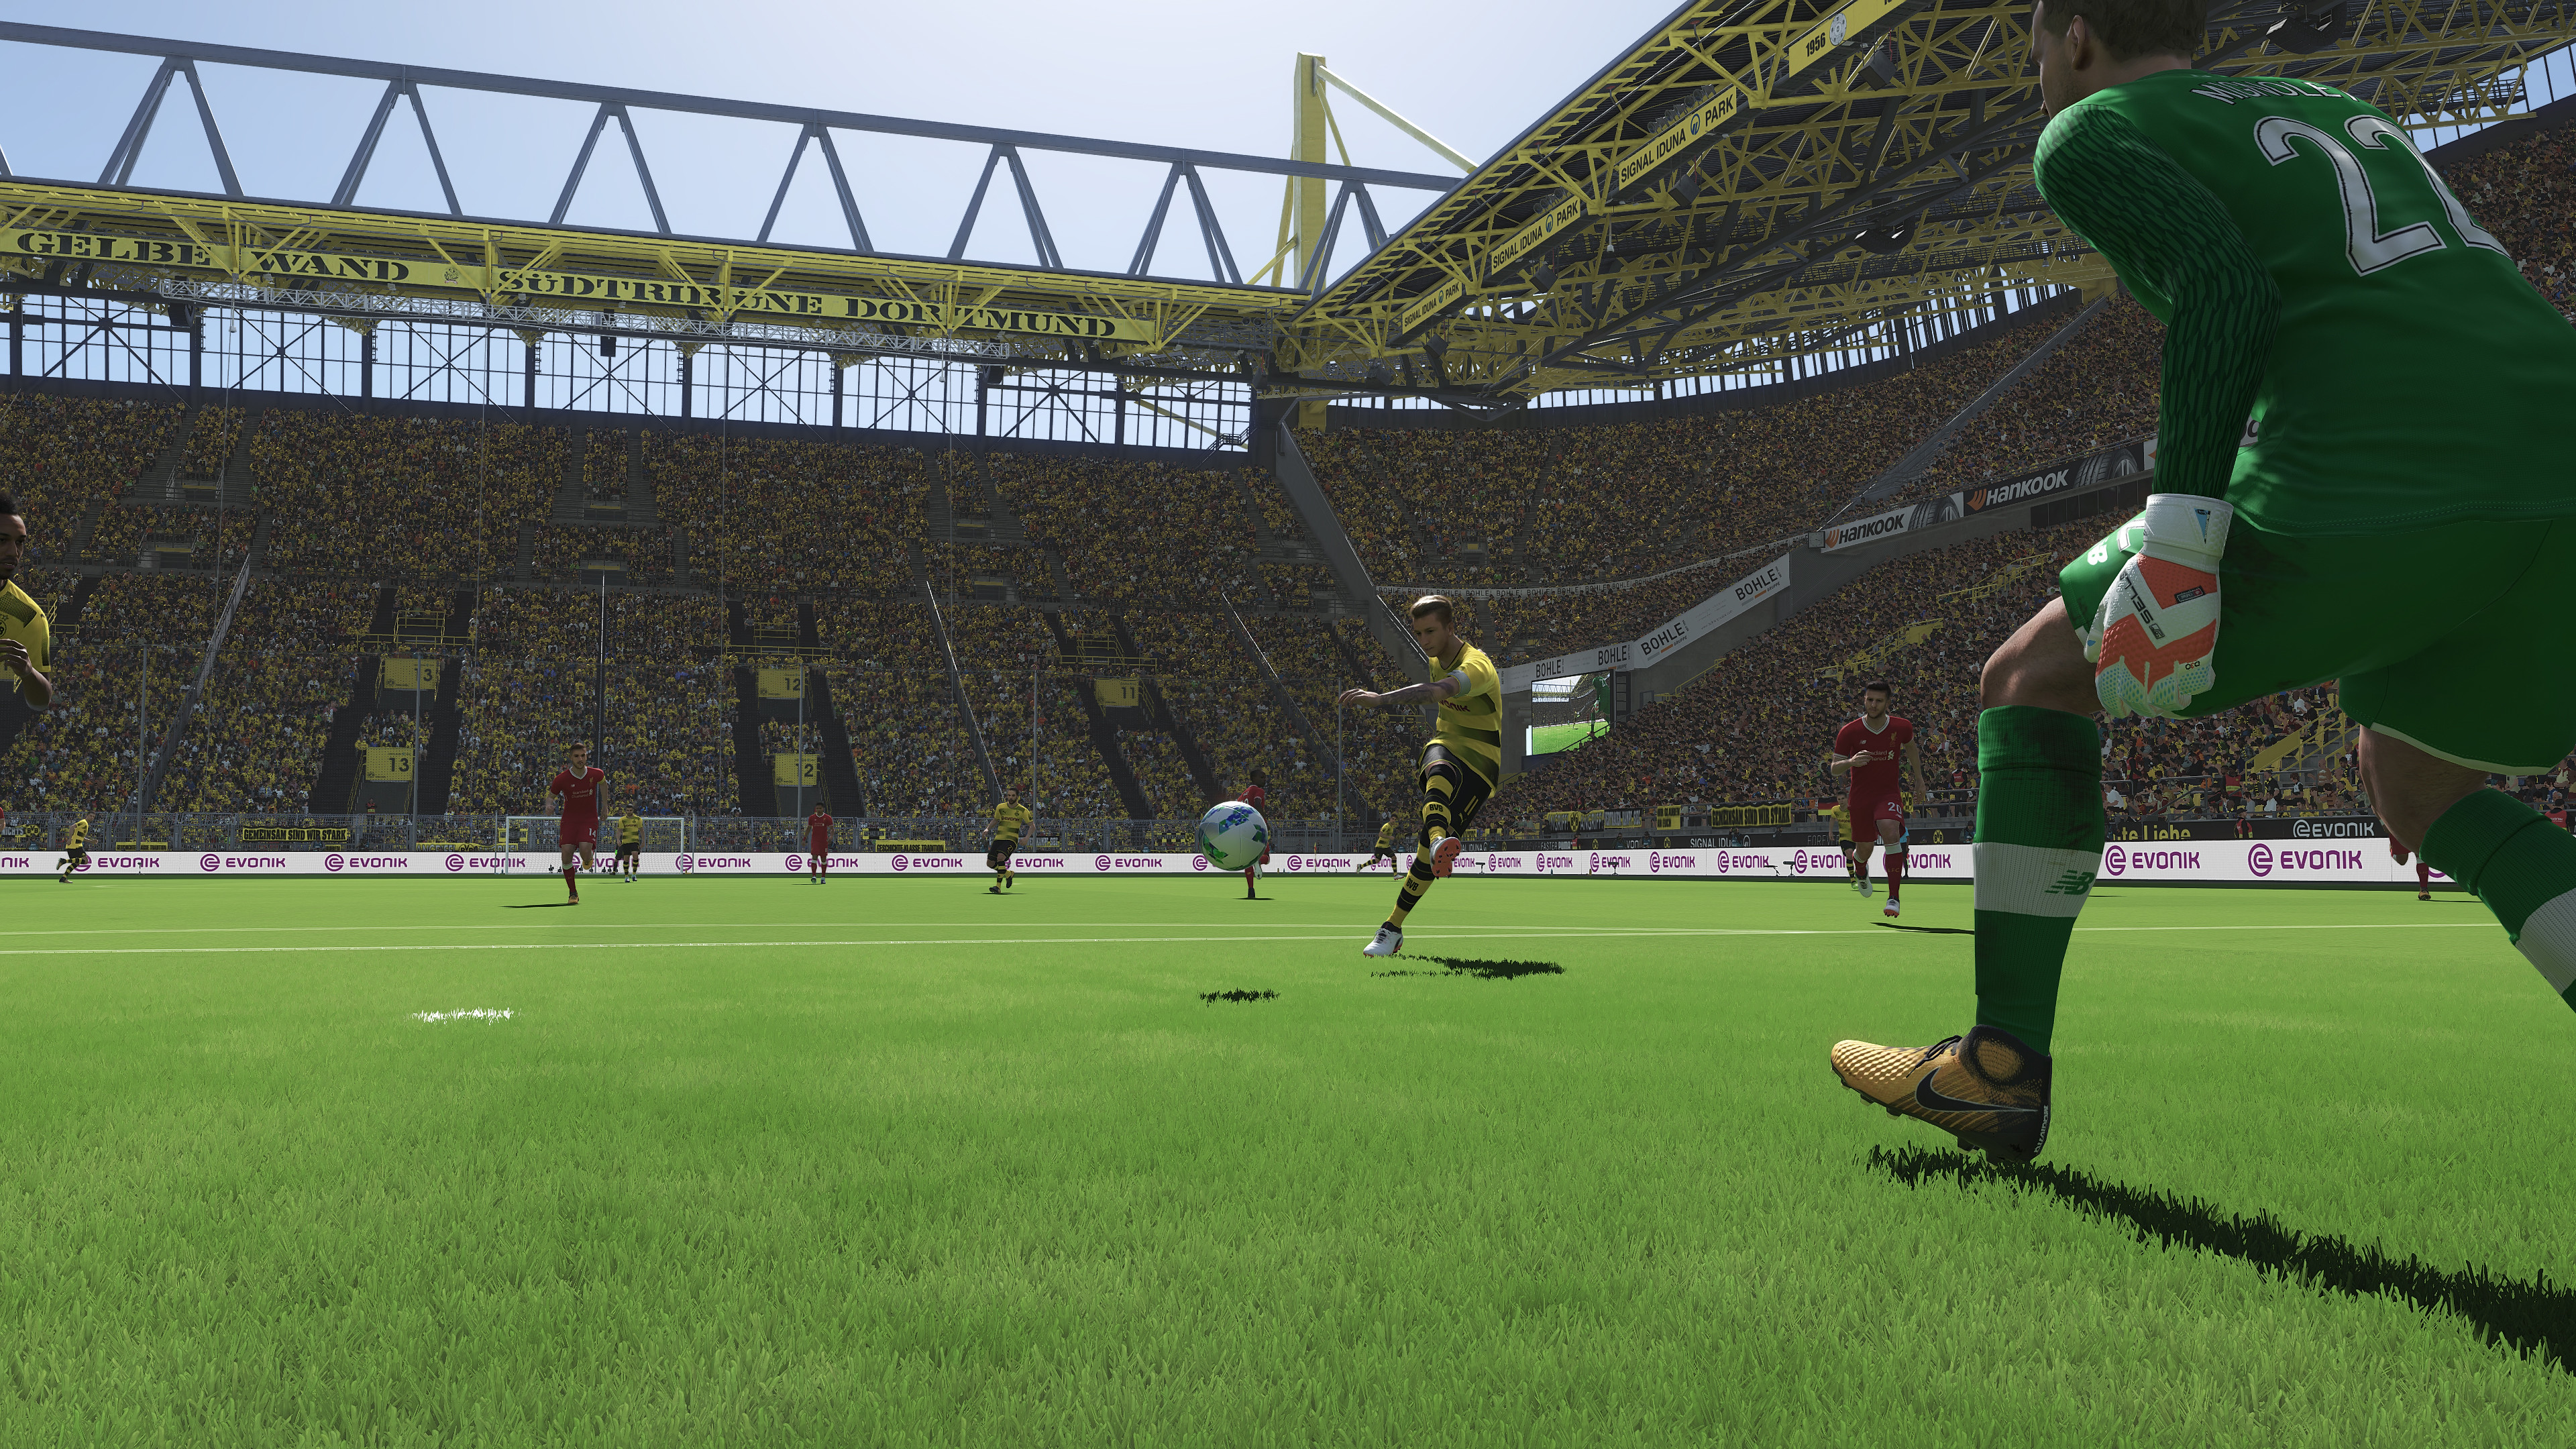 3840x2160 ... Pro Evolution Soccer 2018 NVIDIA Ansel 4K Screenshot